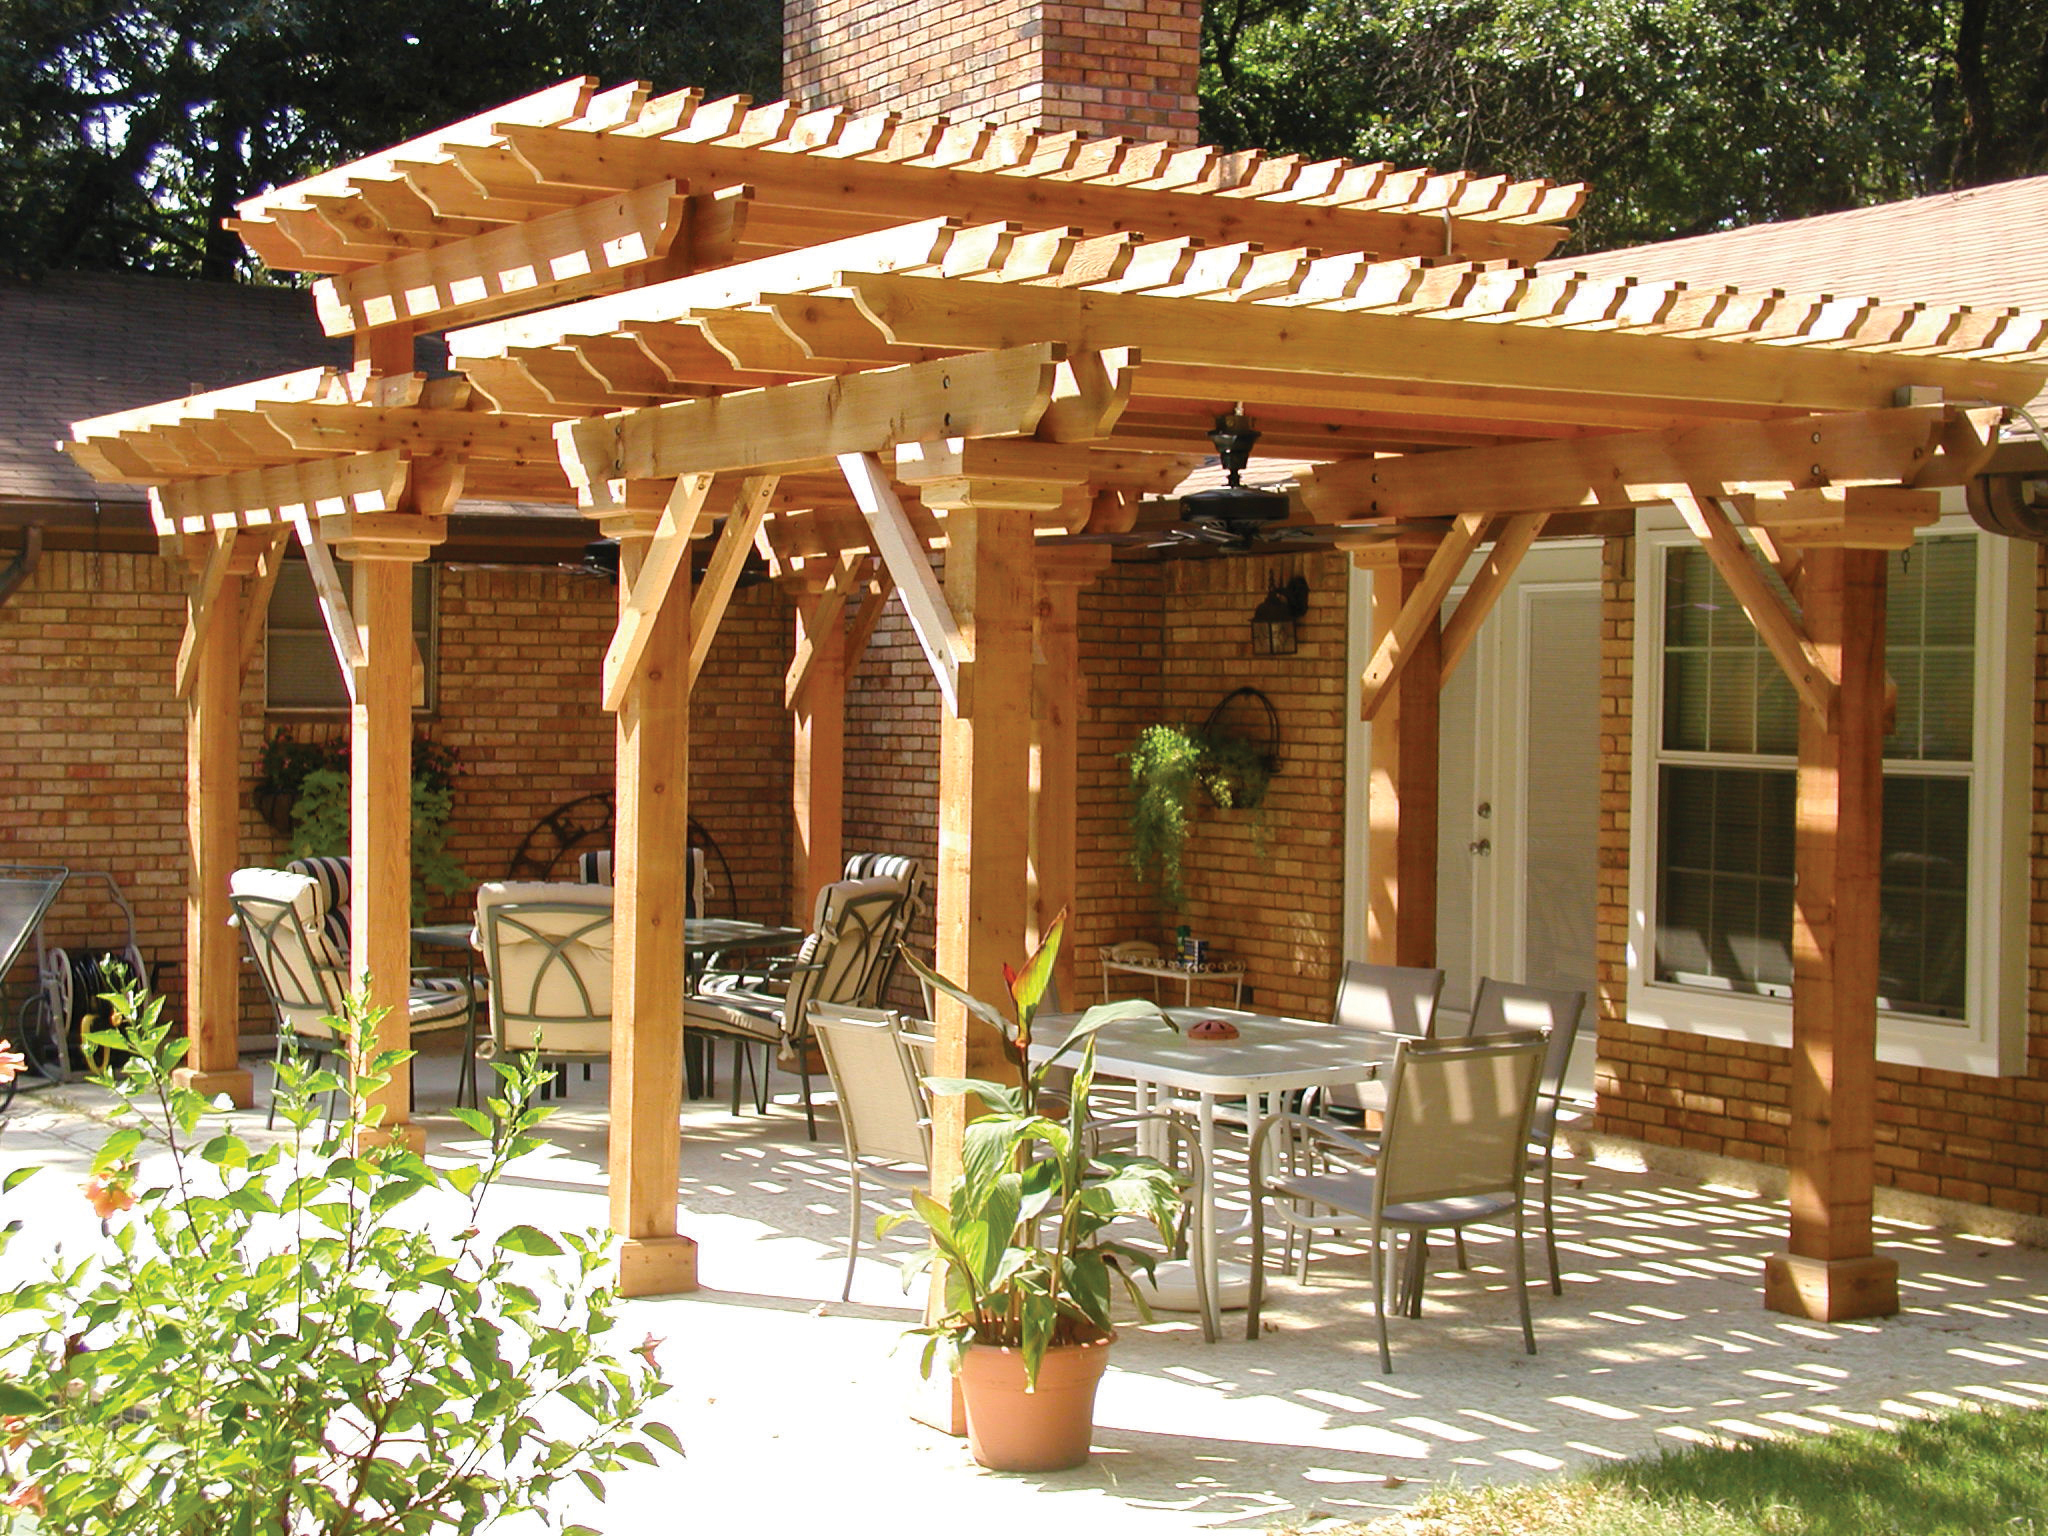 Different Types Of Decking Materials For Your Deck